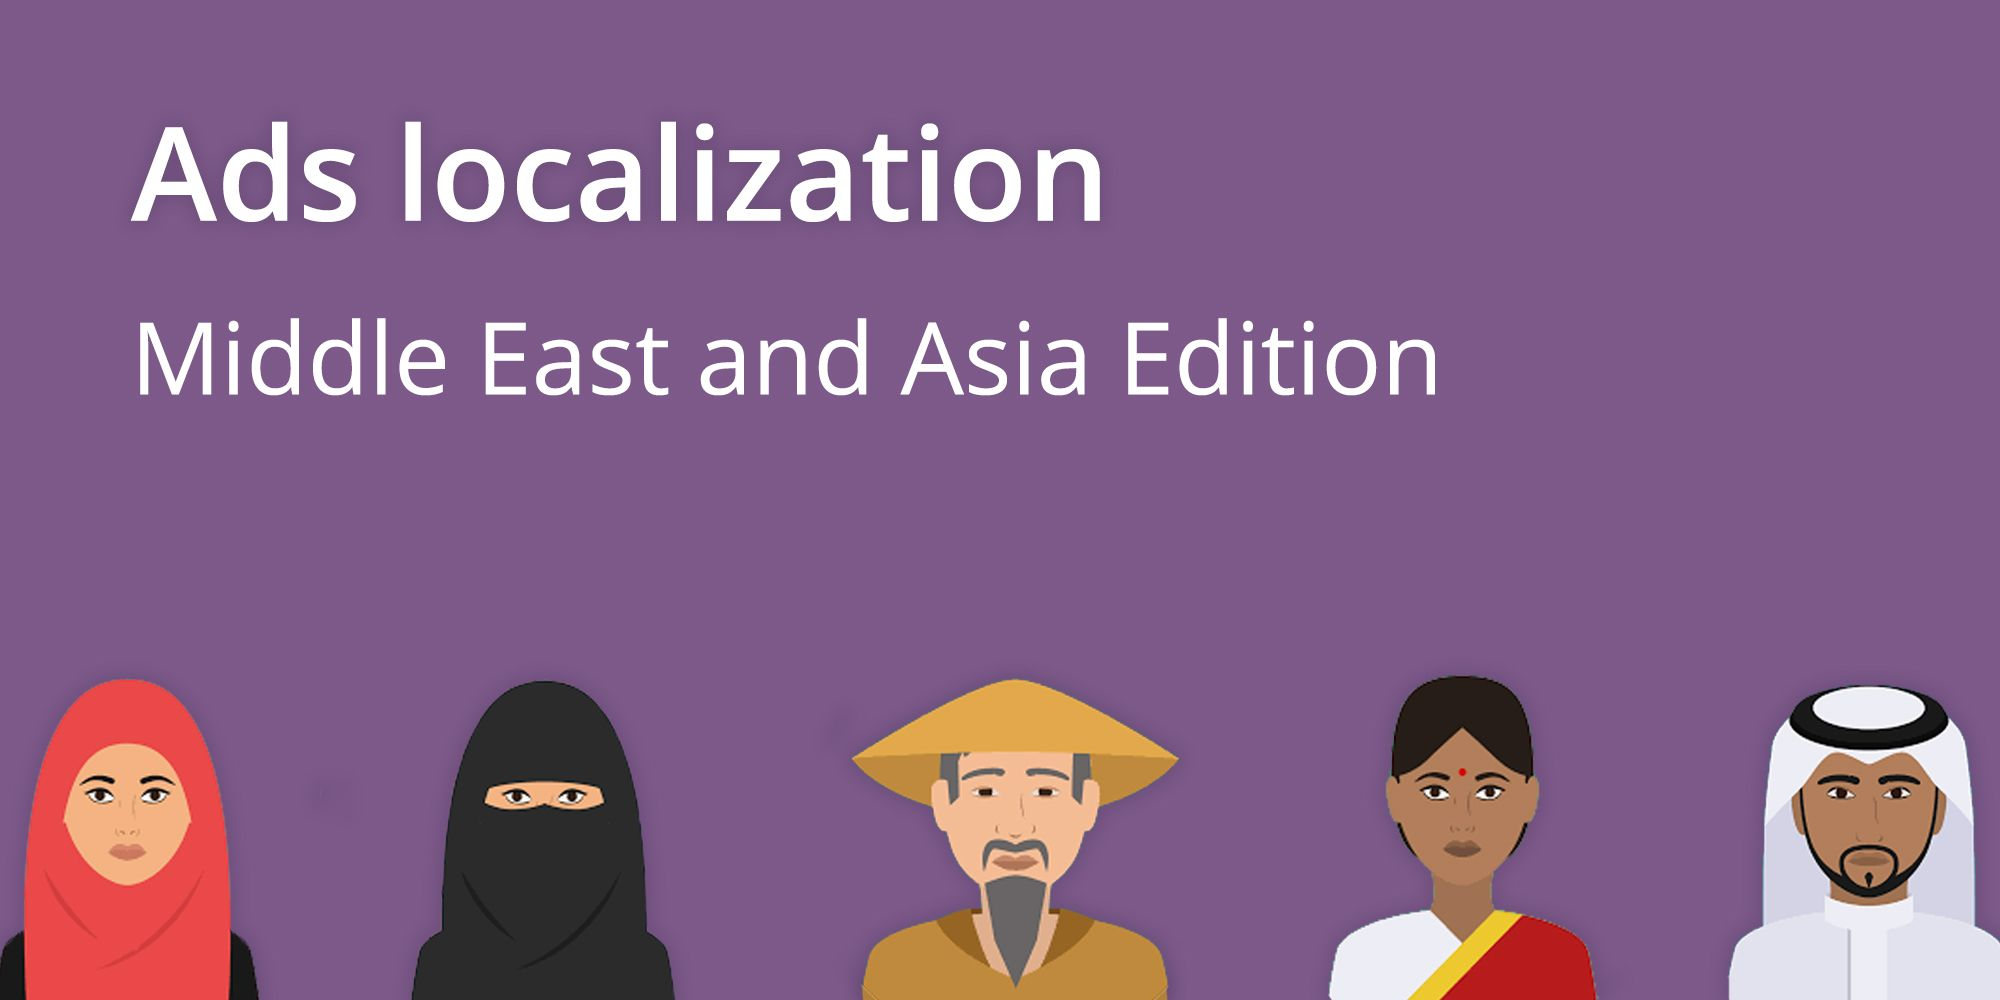 Ads localization for the Middle East and Asia